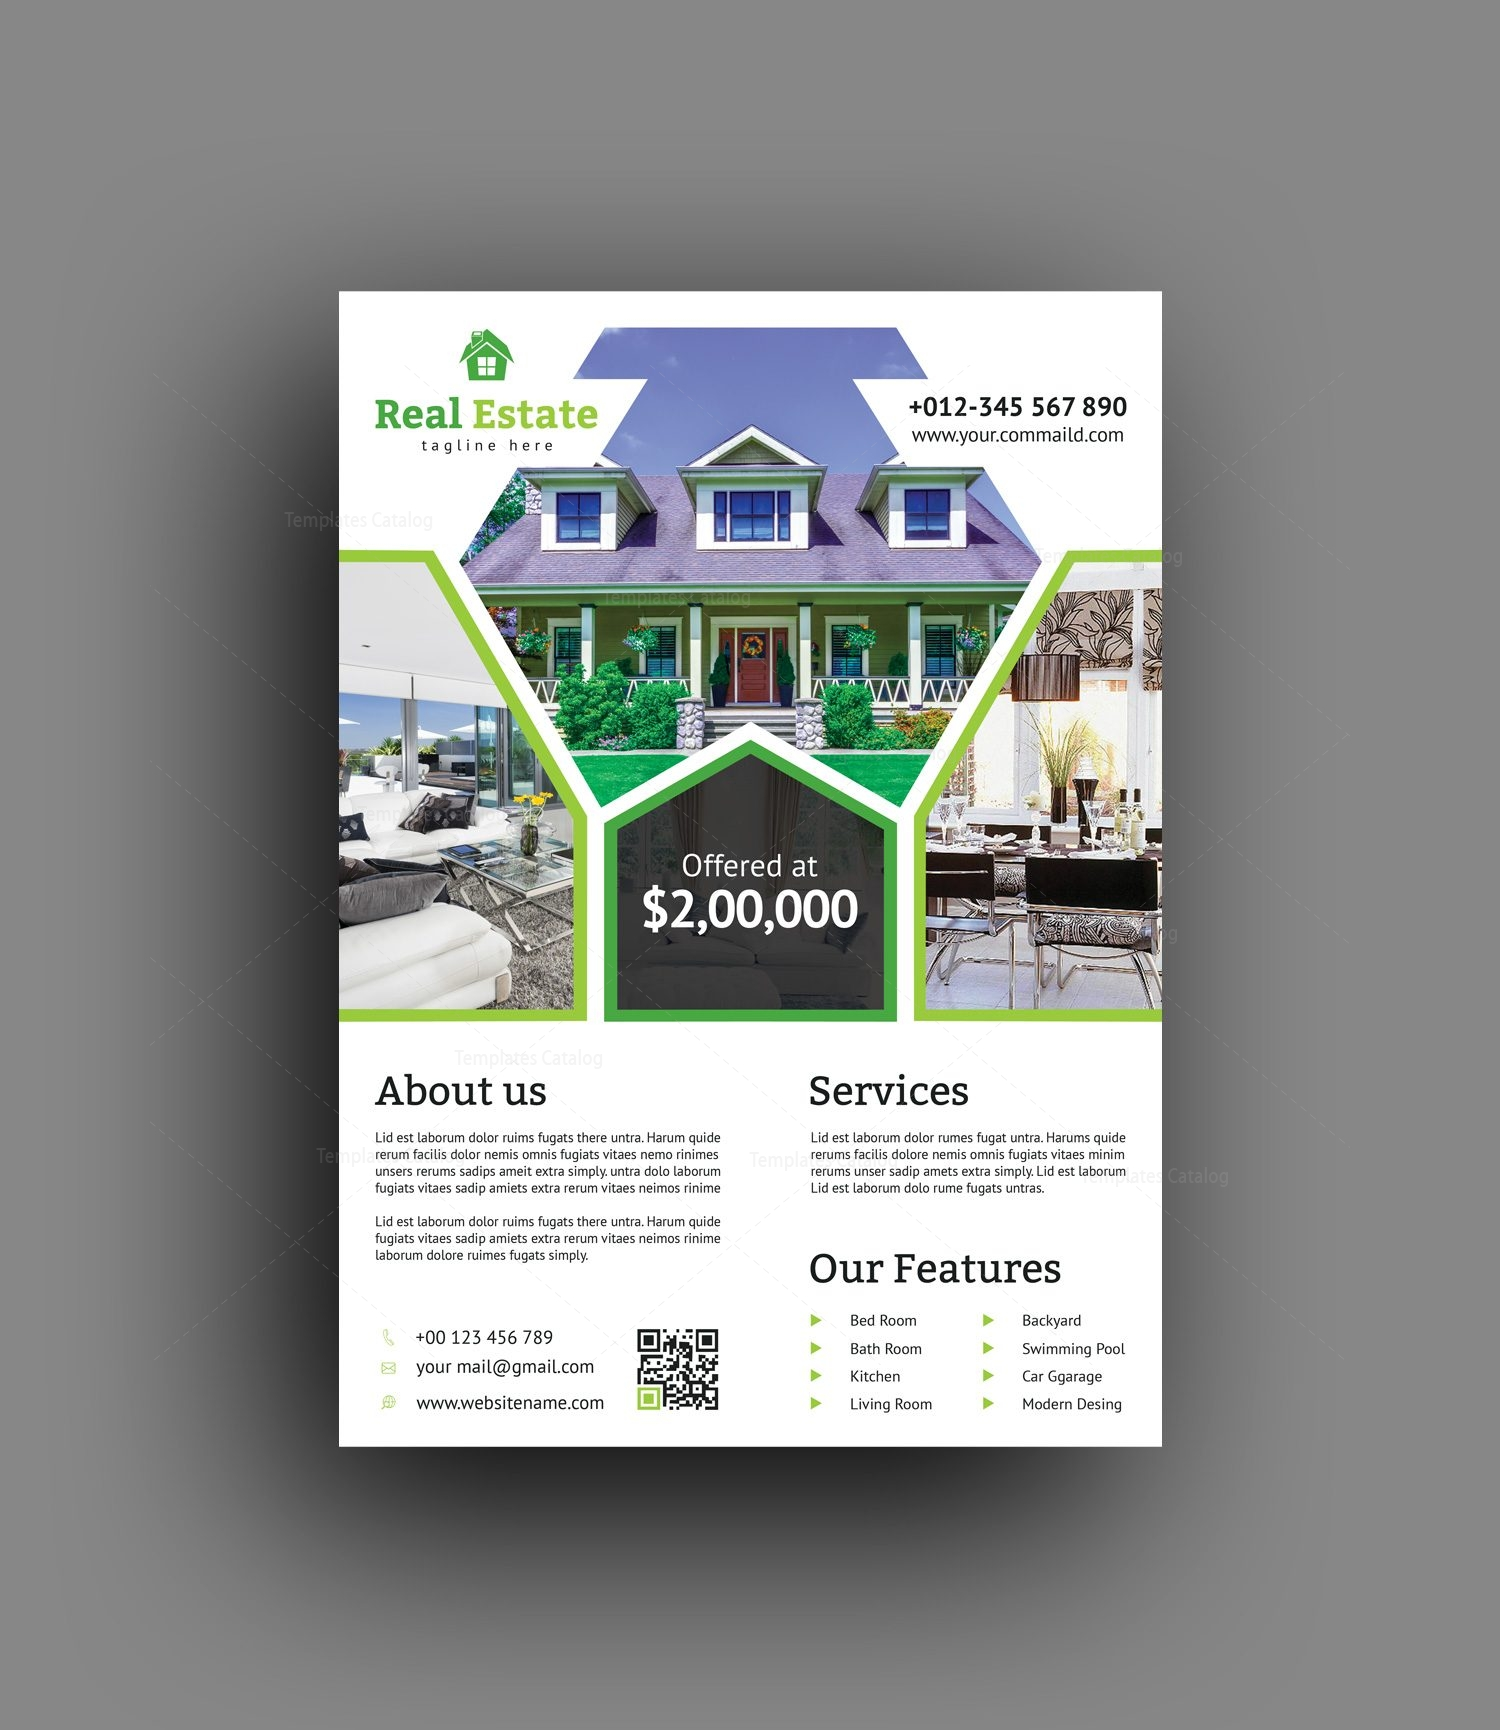 real estate brochure design templates - premium real estate flyer design template 001488